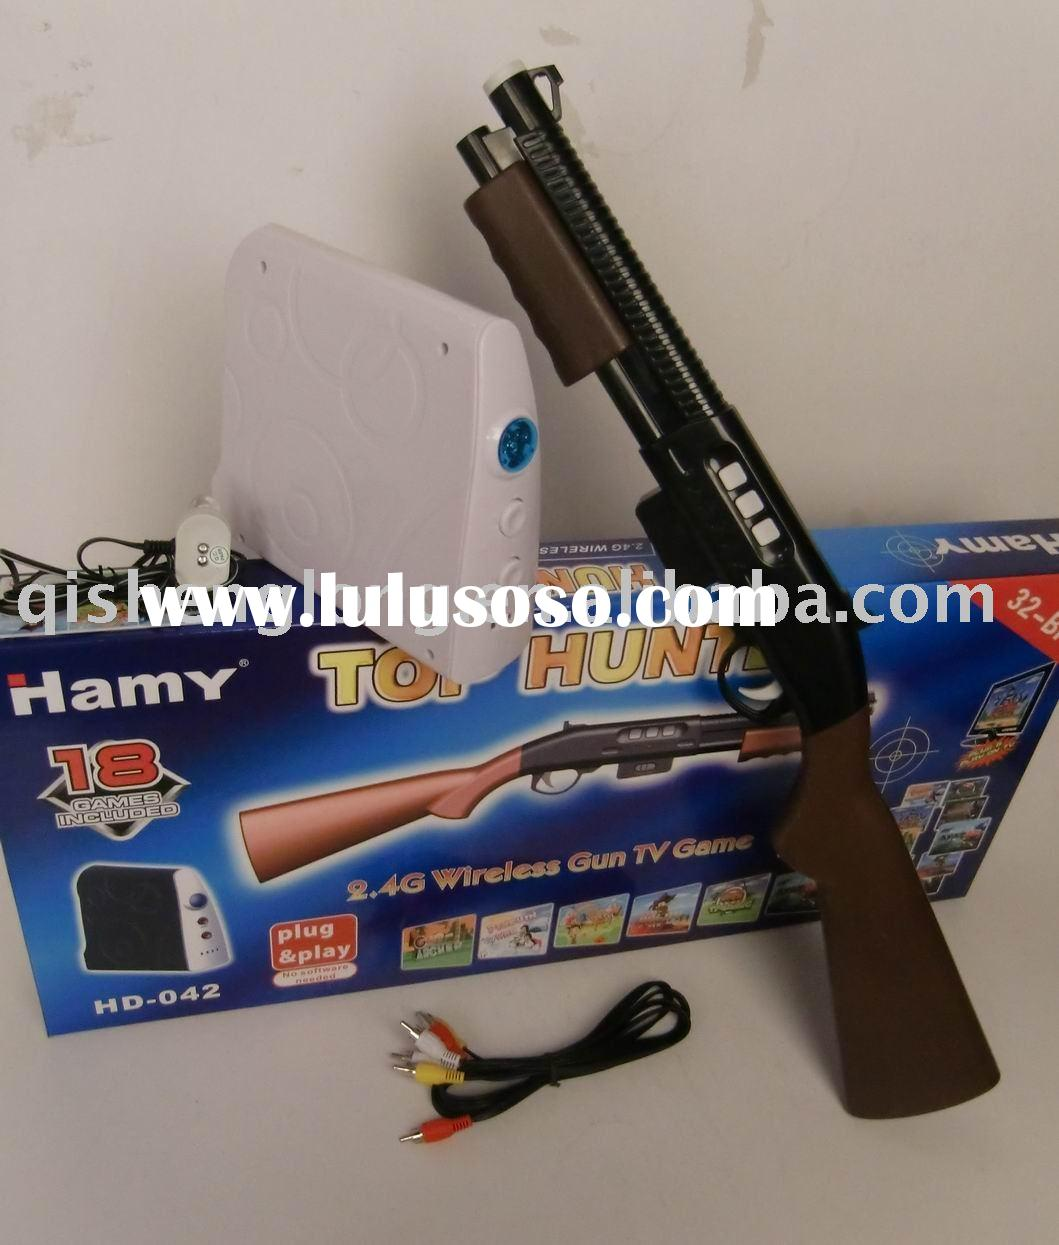 HD-042 2011 VIRTUAL SHOOTER SIMULATION GAME, 32 BITS, ABSOLUTELY NEW, 2.4GHZ WIRELESS